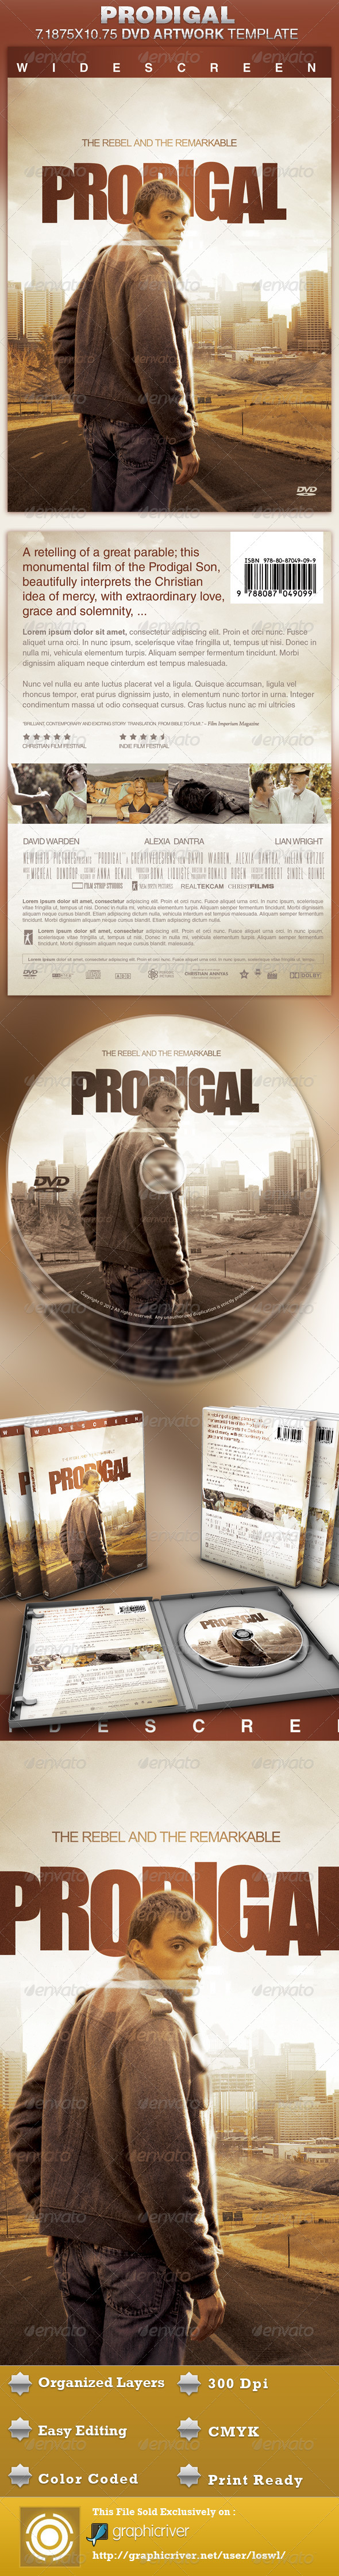 GraphicRiver Prodigal DVD Artwork Template 4623472